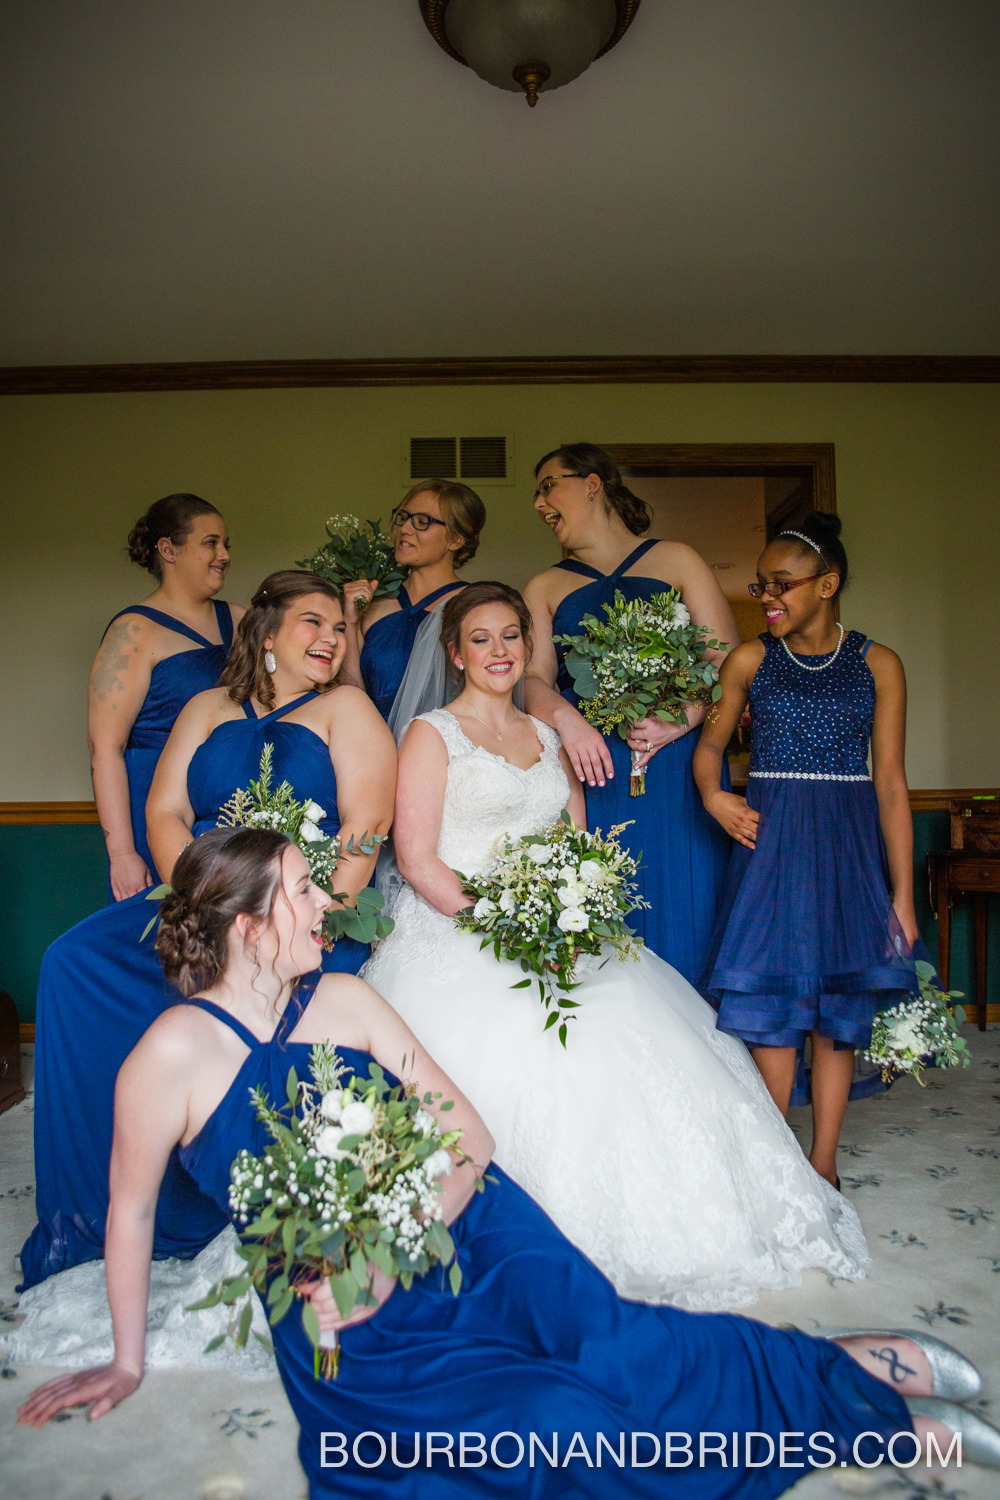 Cincinatti-wedding-party-photographer.jpg